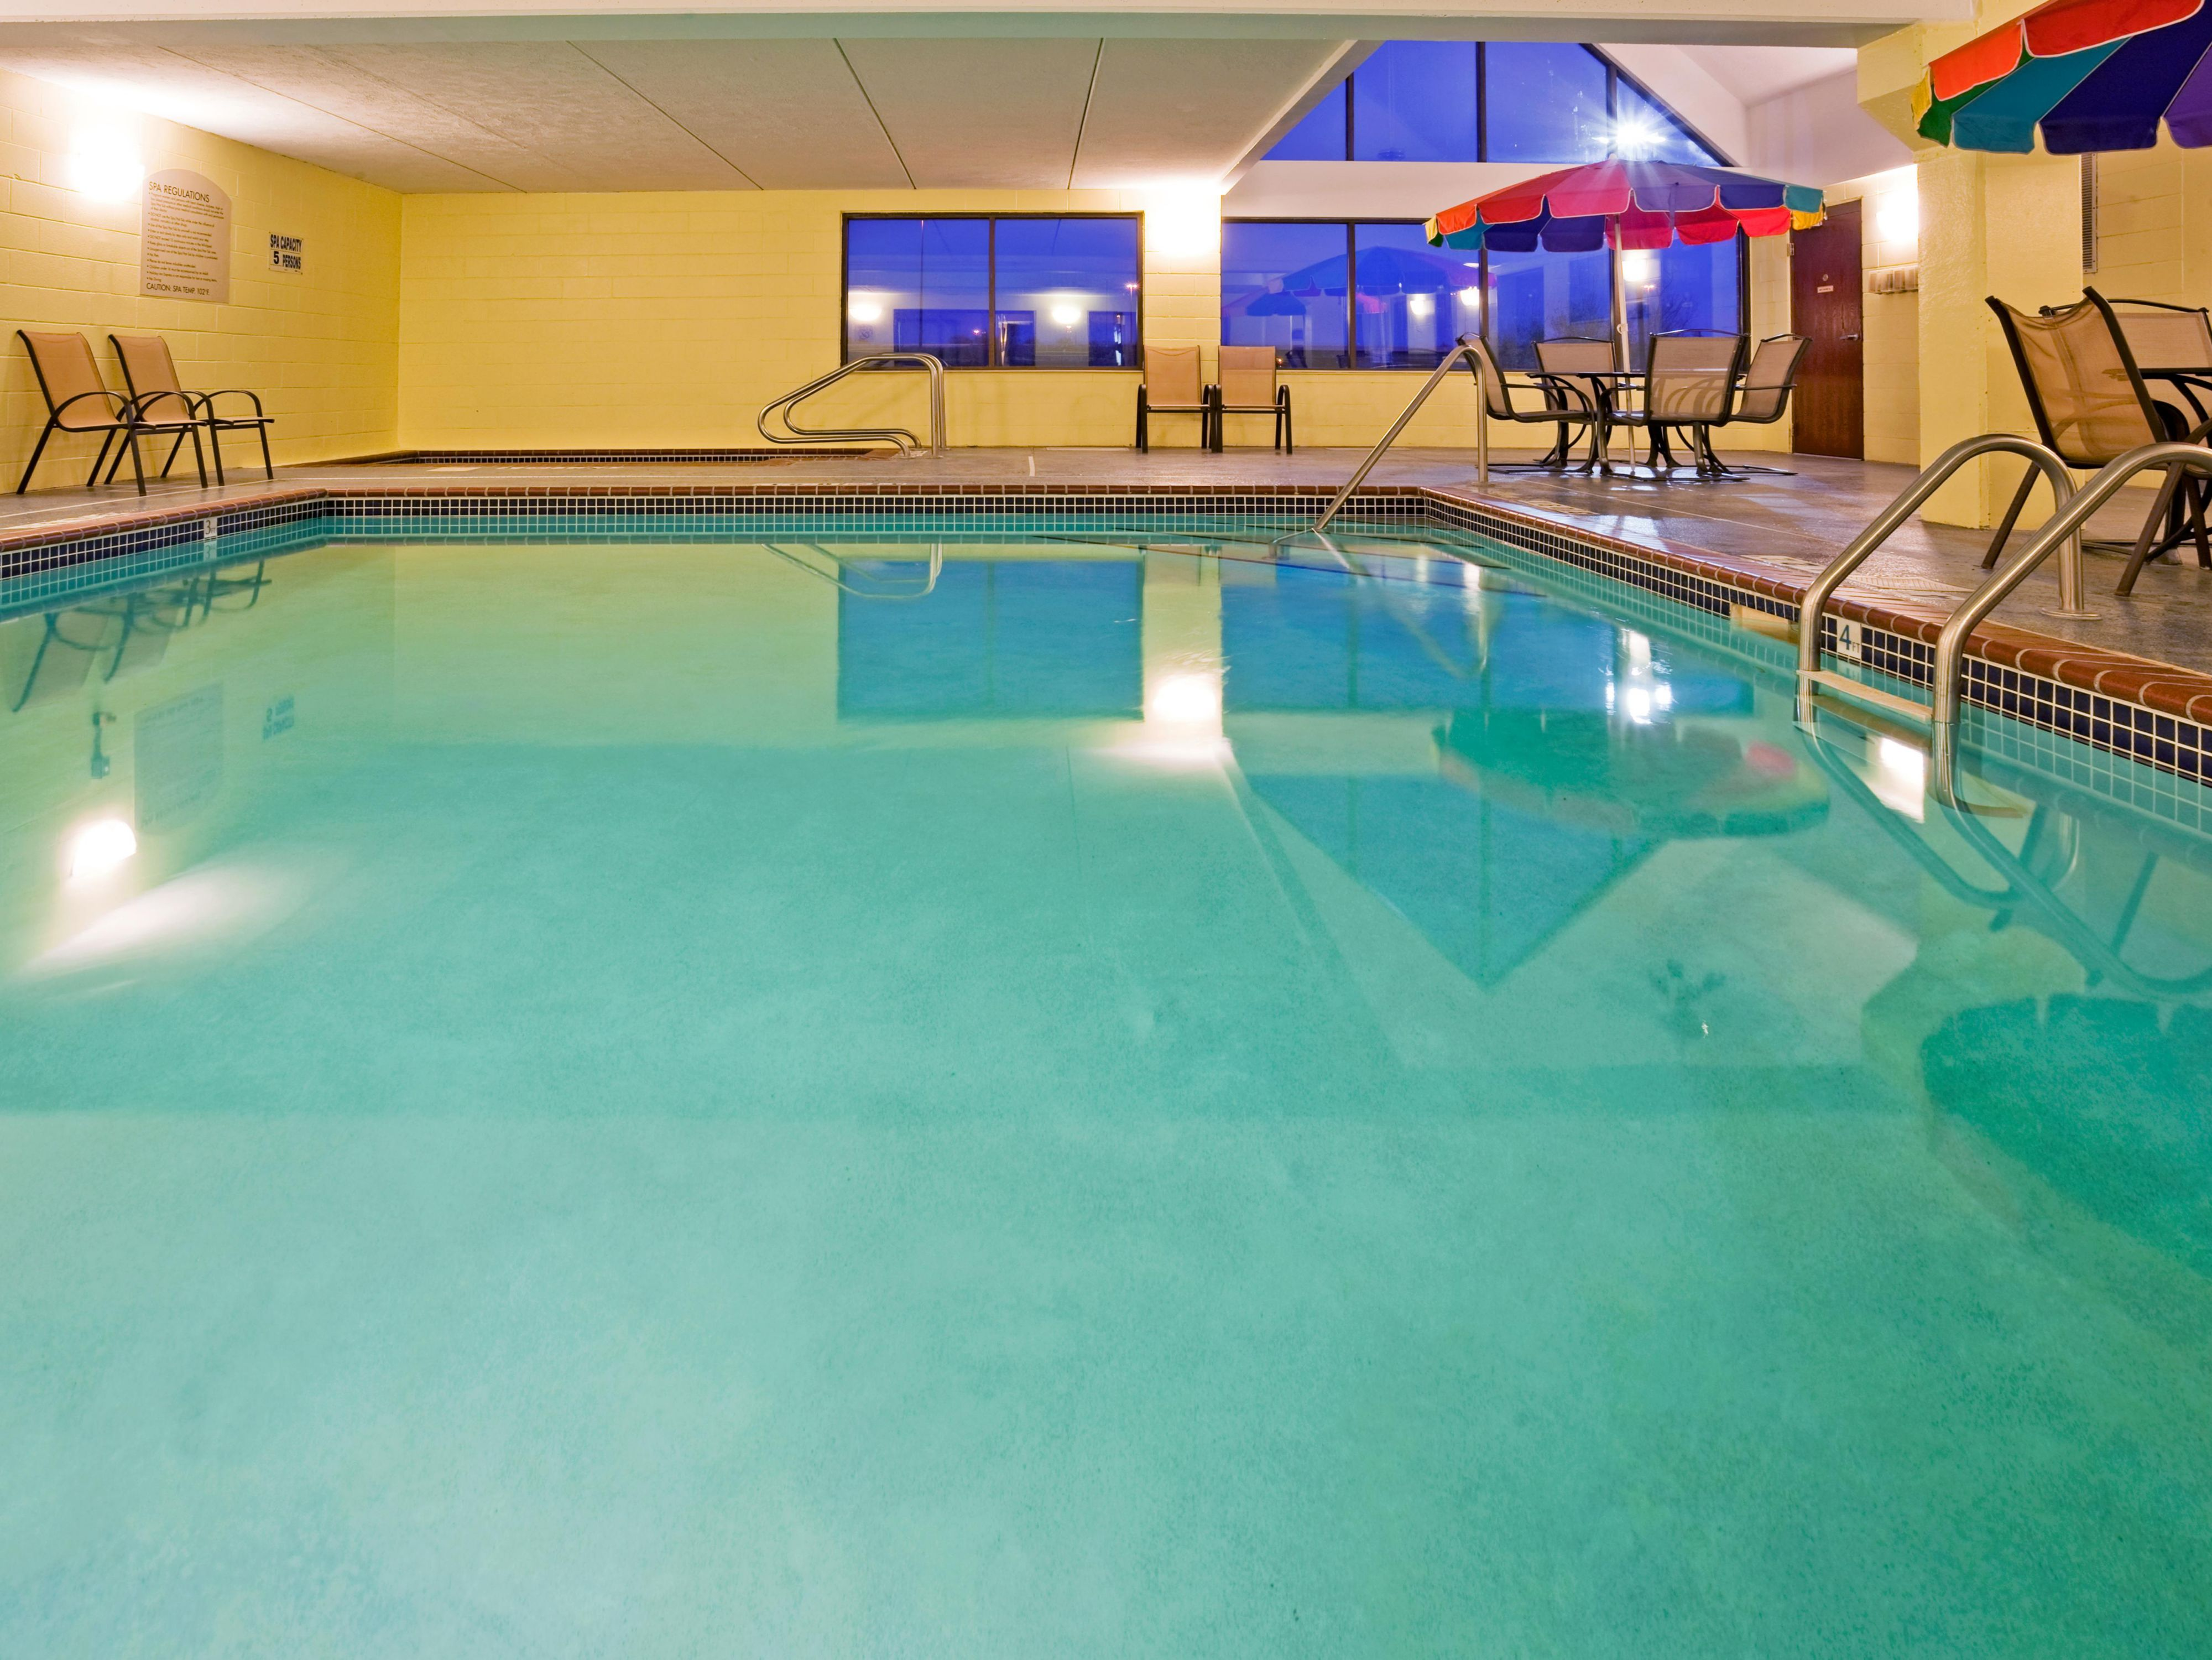 Enjoy fun with the whole family in our indoor heated pool